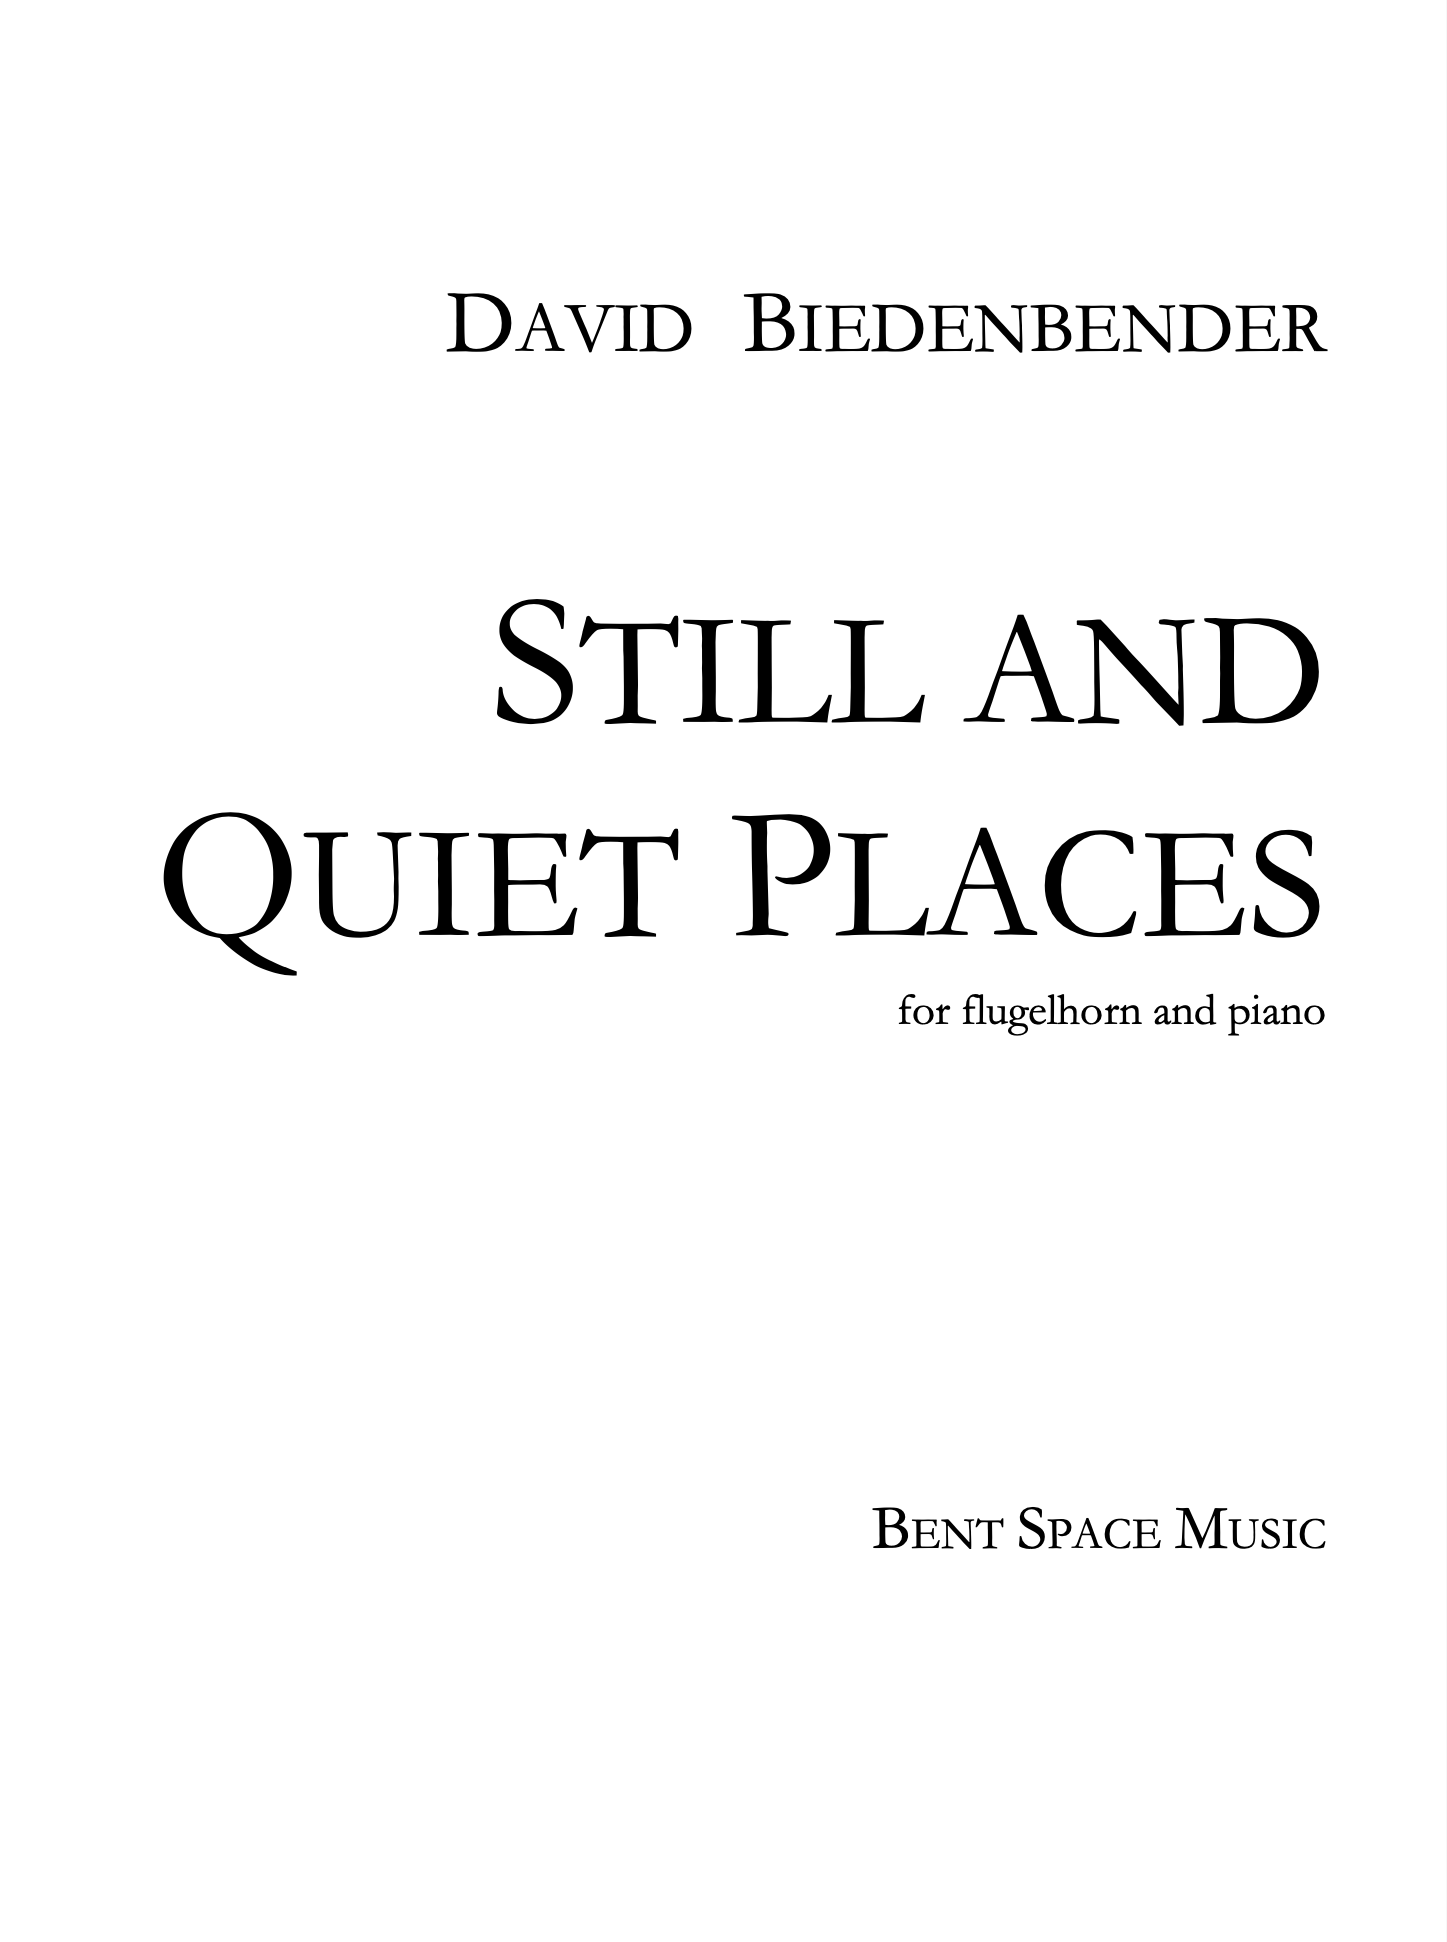 Still And Quiet Places by David Biedenbender